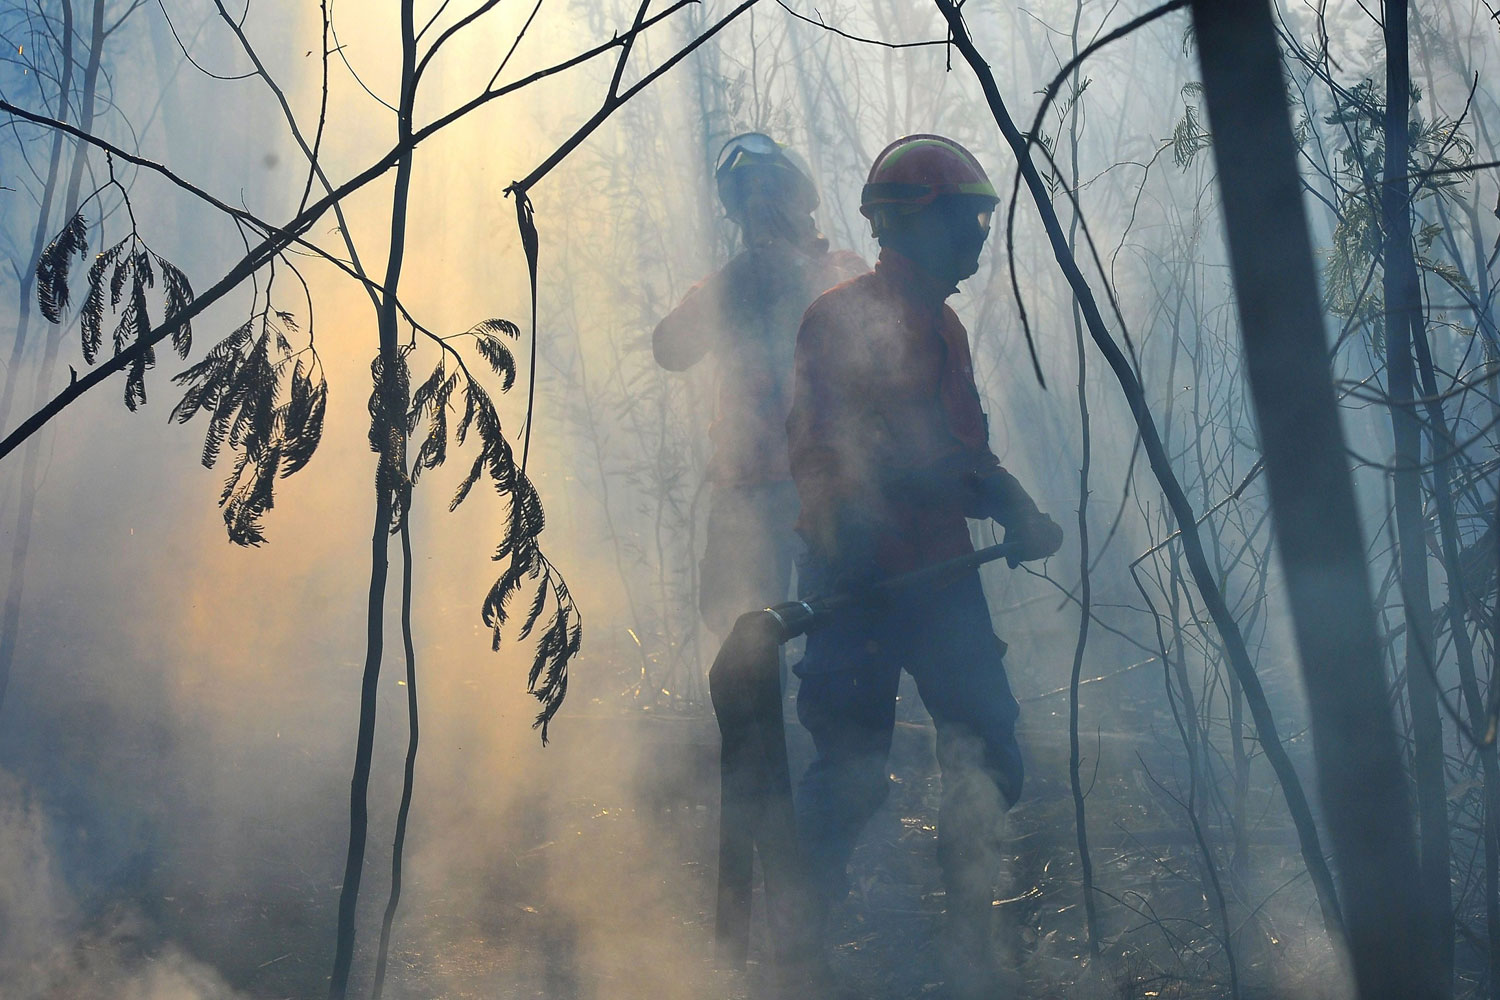 July 30, 2011. Firemen try to extinguish a forest fire in a forest at Nelas, central Portugal, that restarted after it was thought to be extinguished on 28 July 2011.